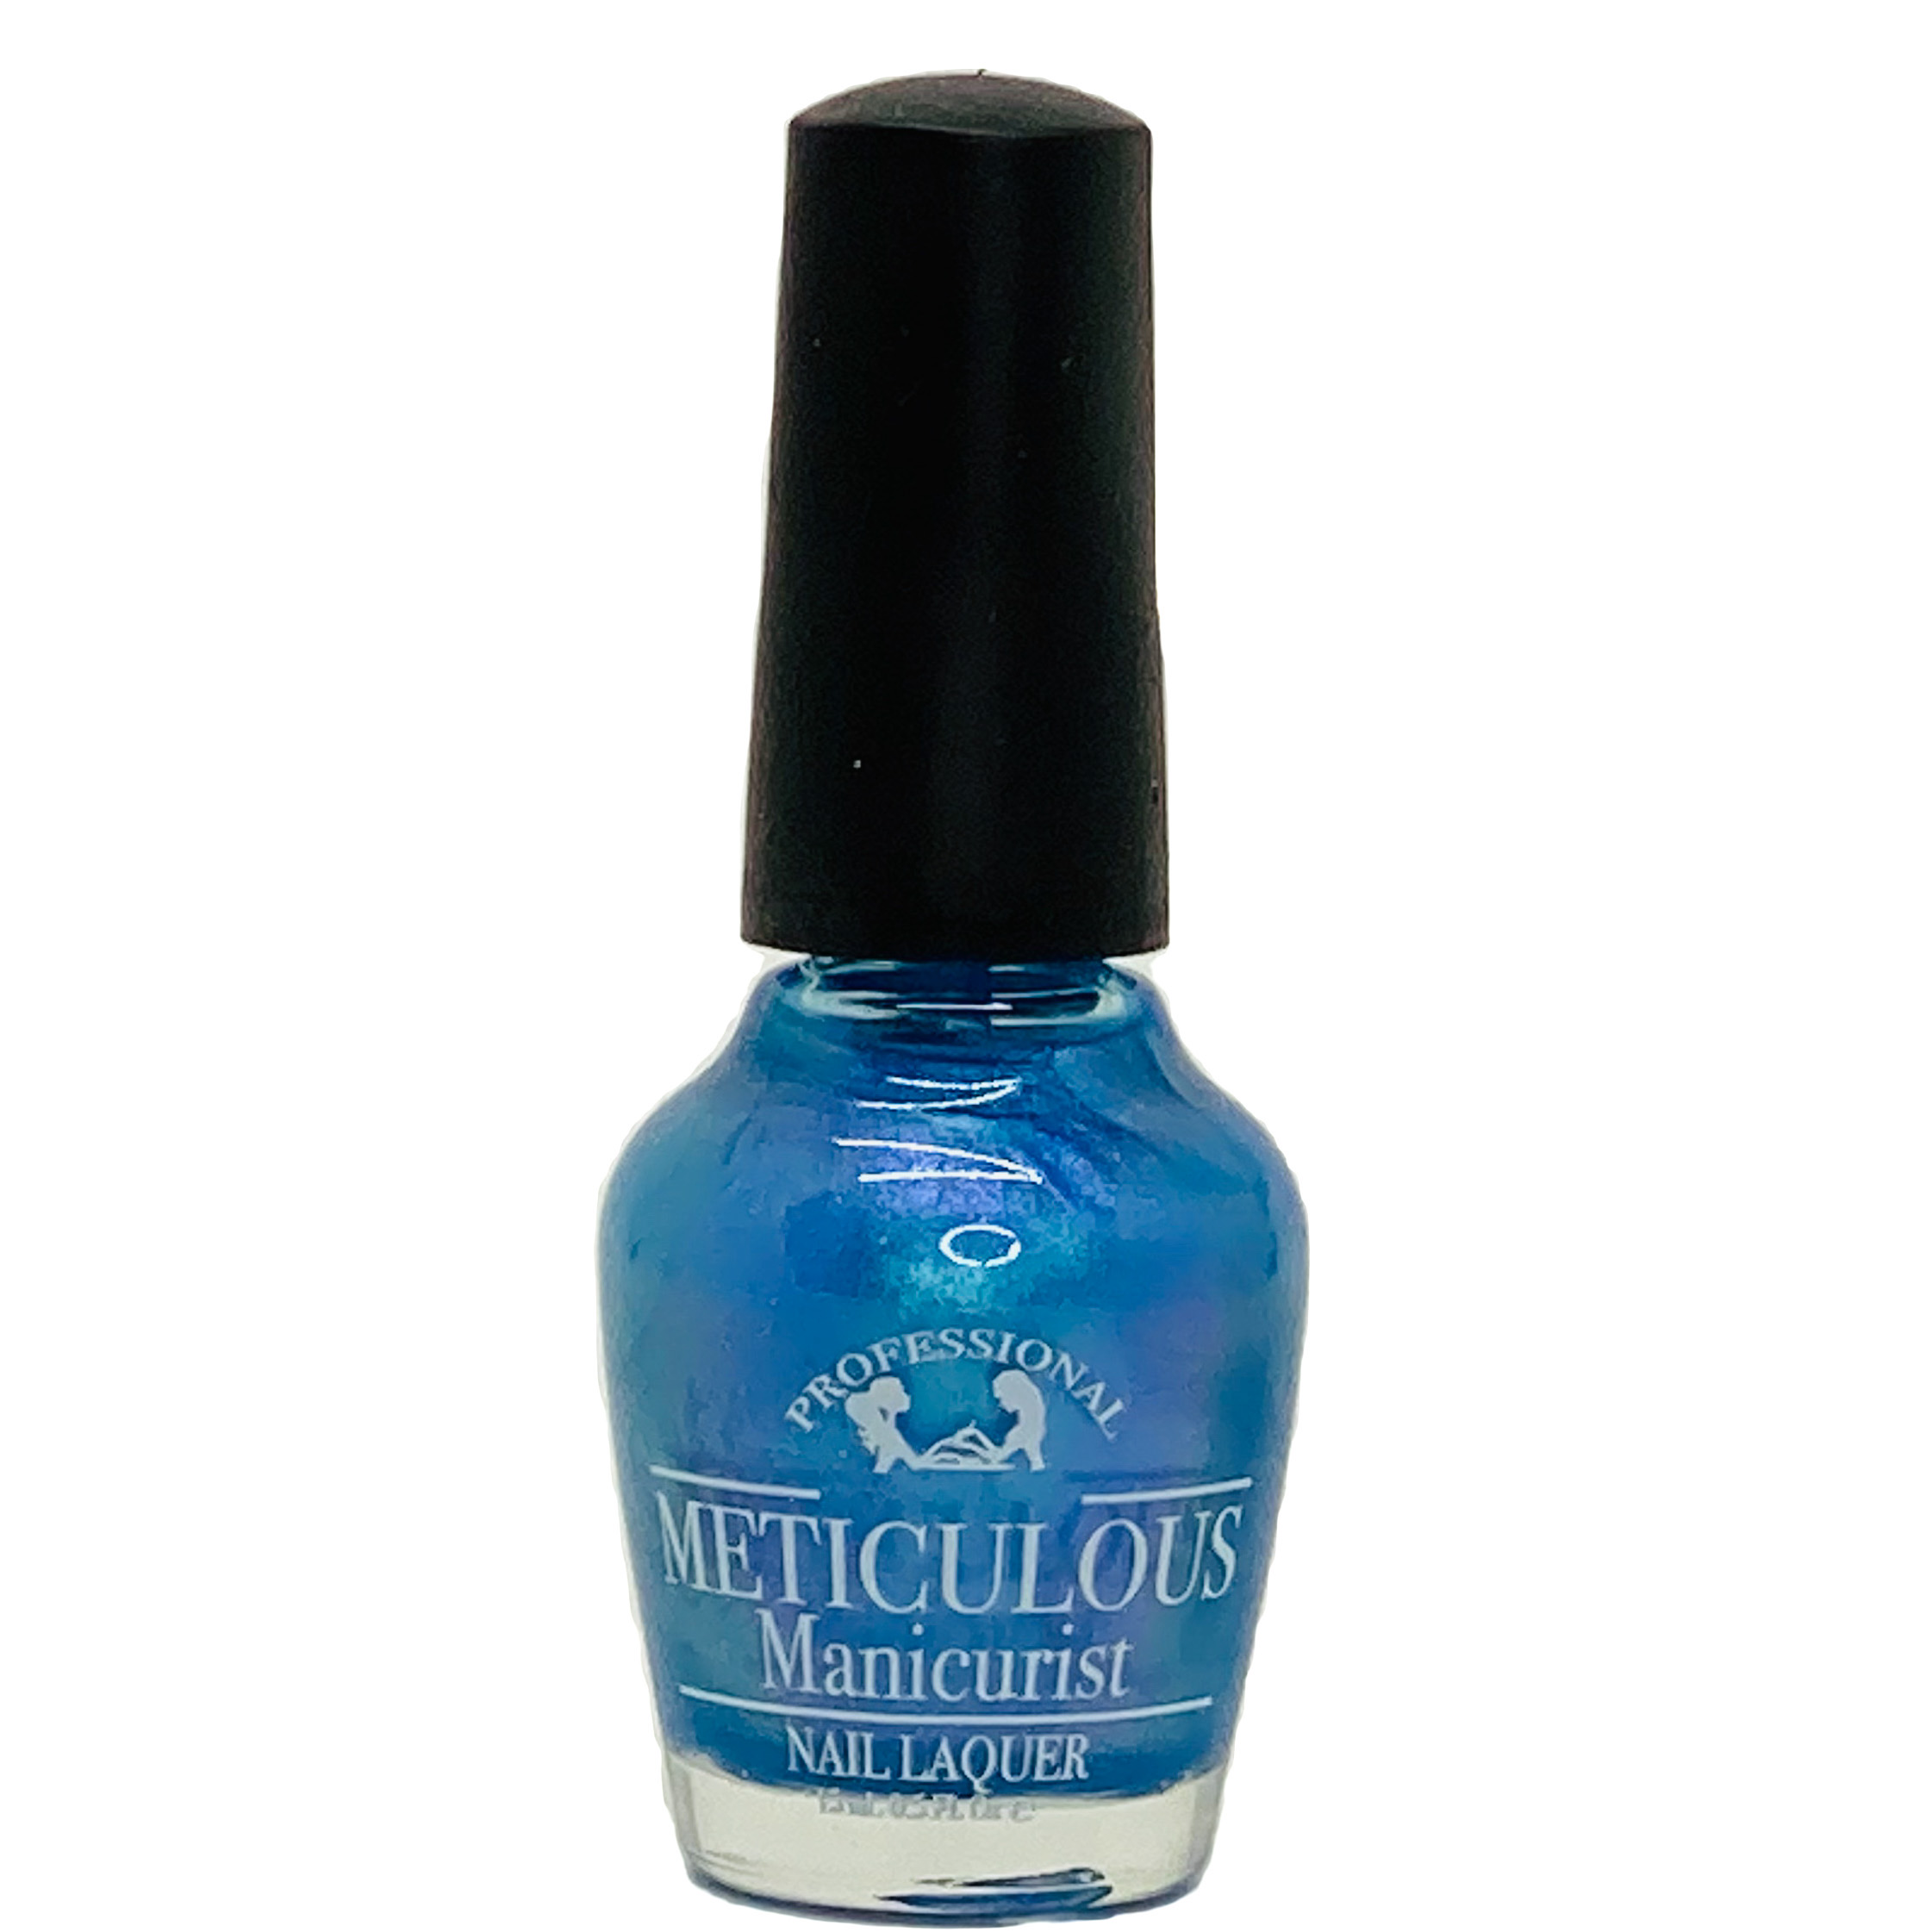 Salon Taupe Et Turquoise meticulous manicurist nail polish special - $45.95 : the